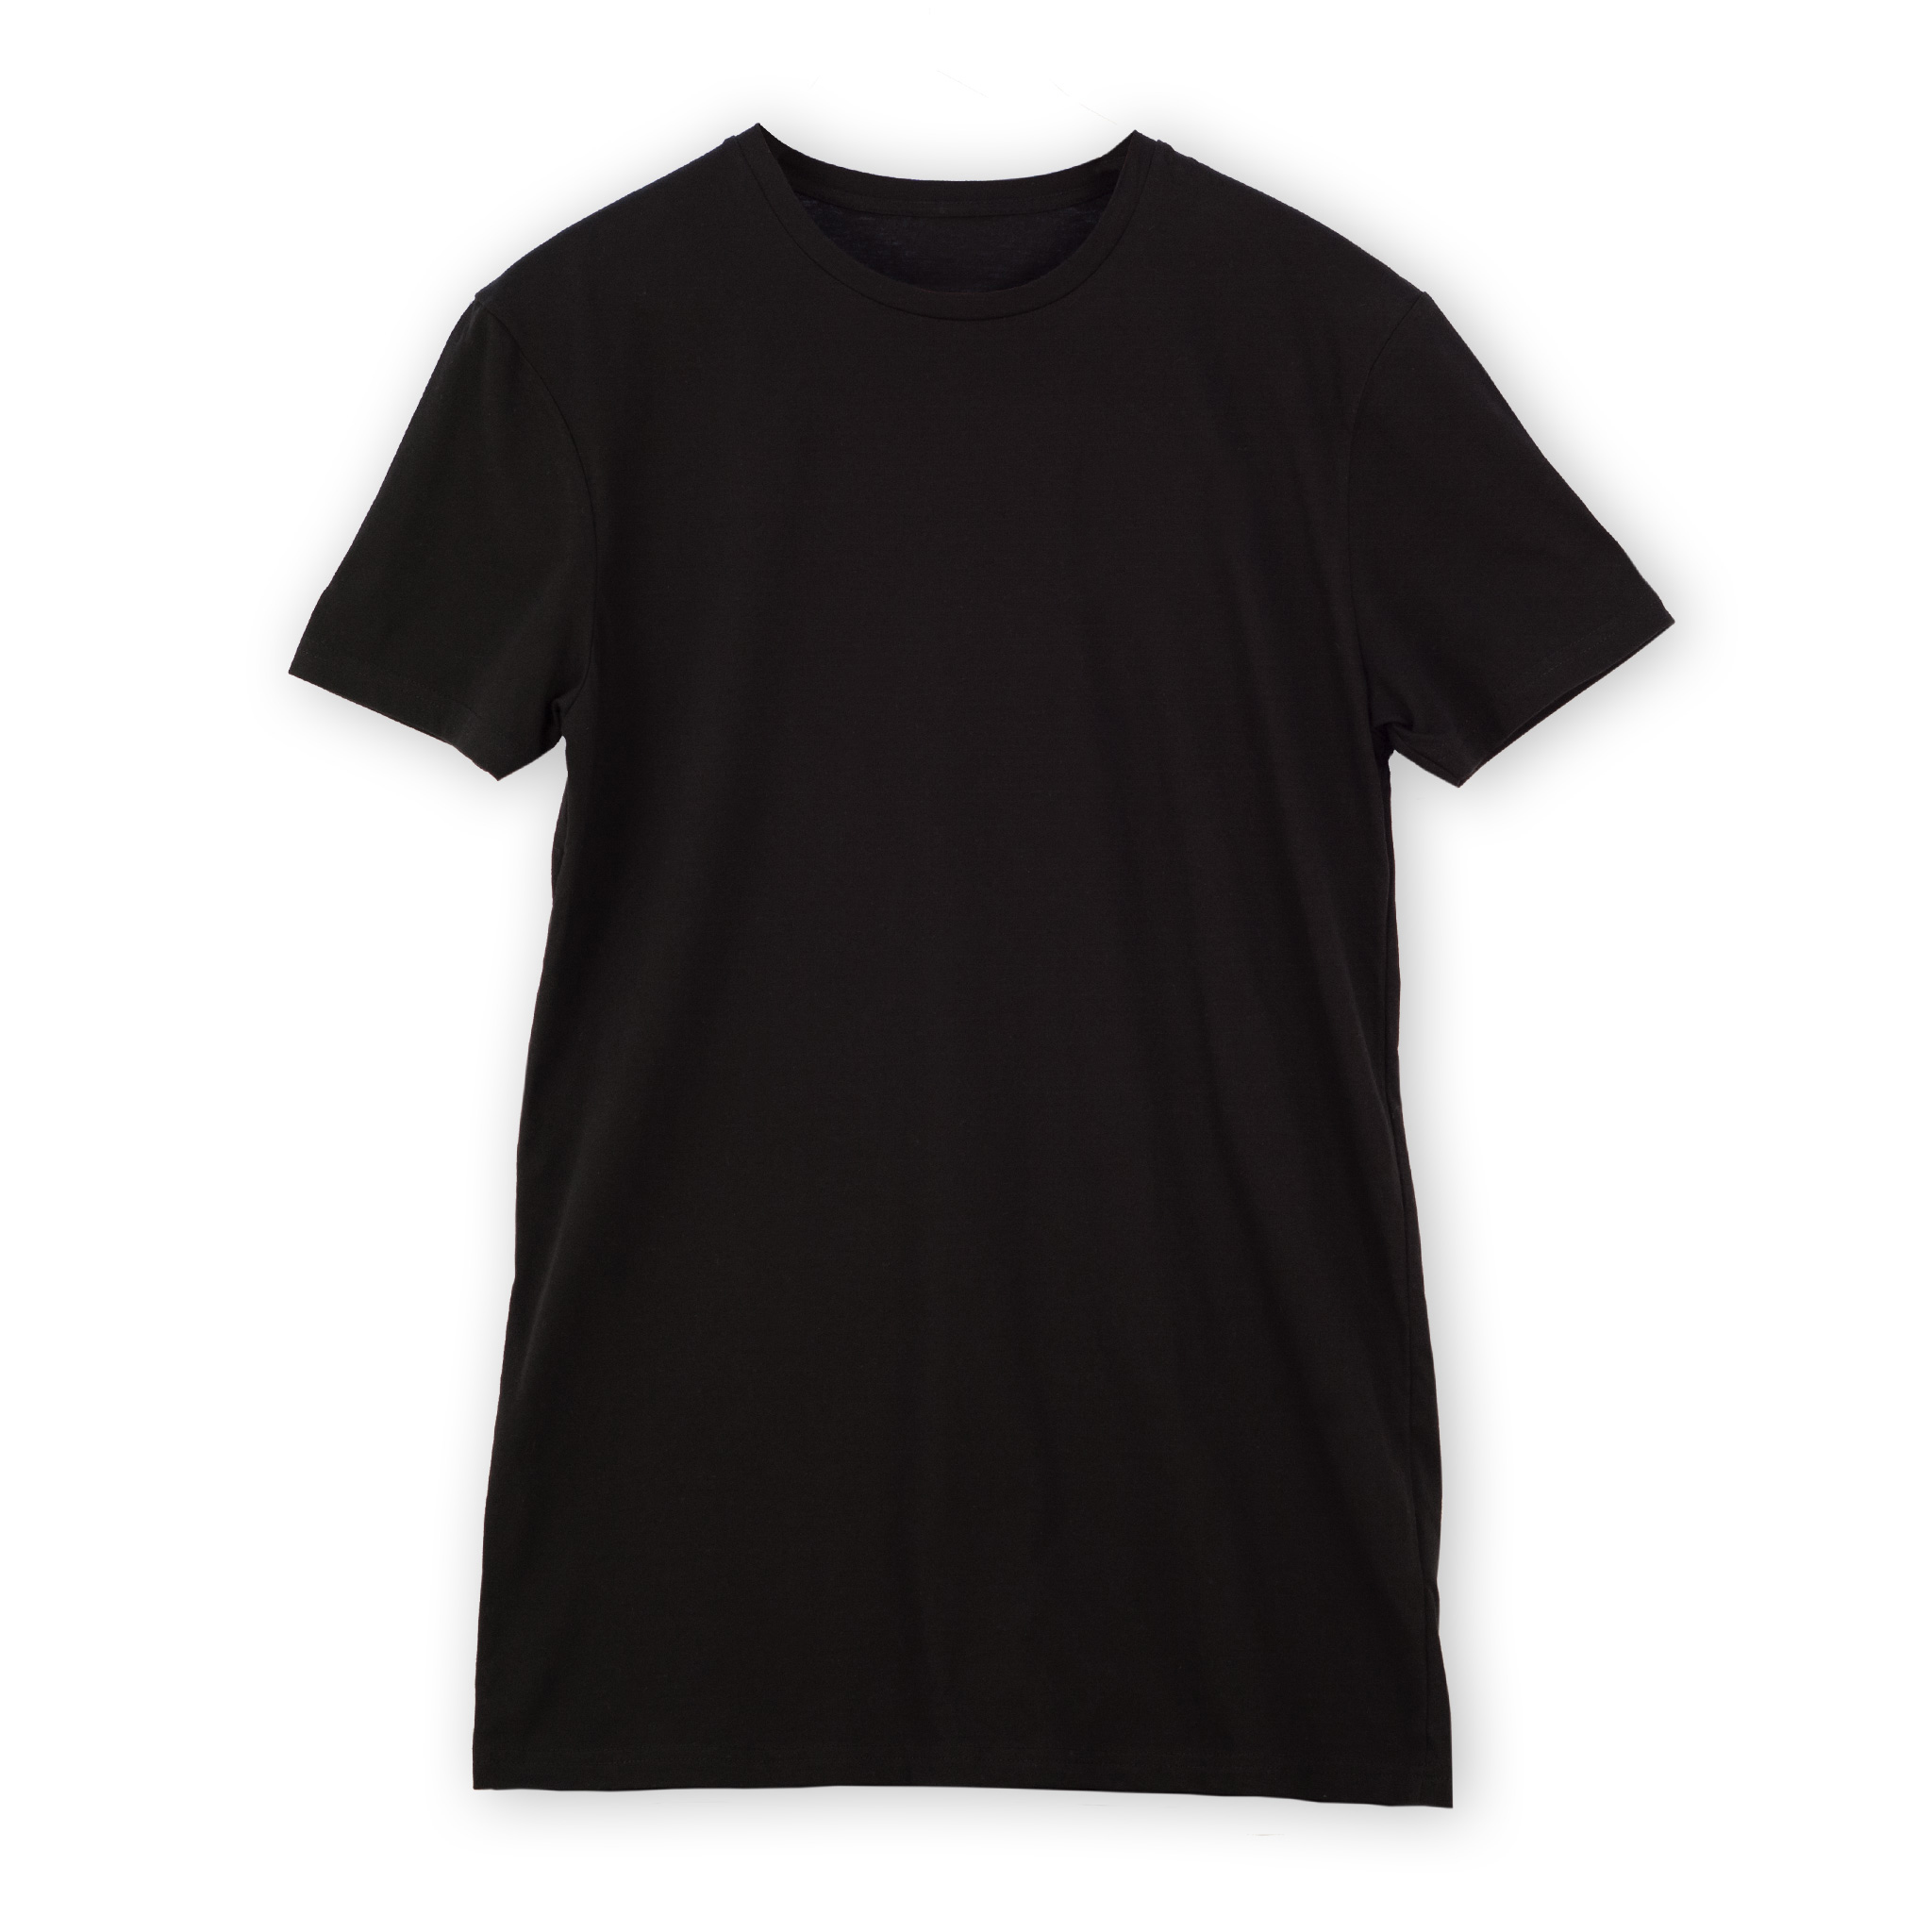 T-shirt men black long